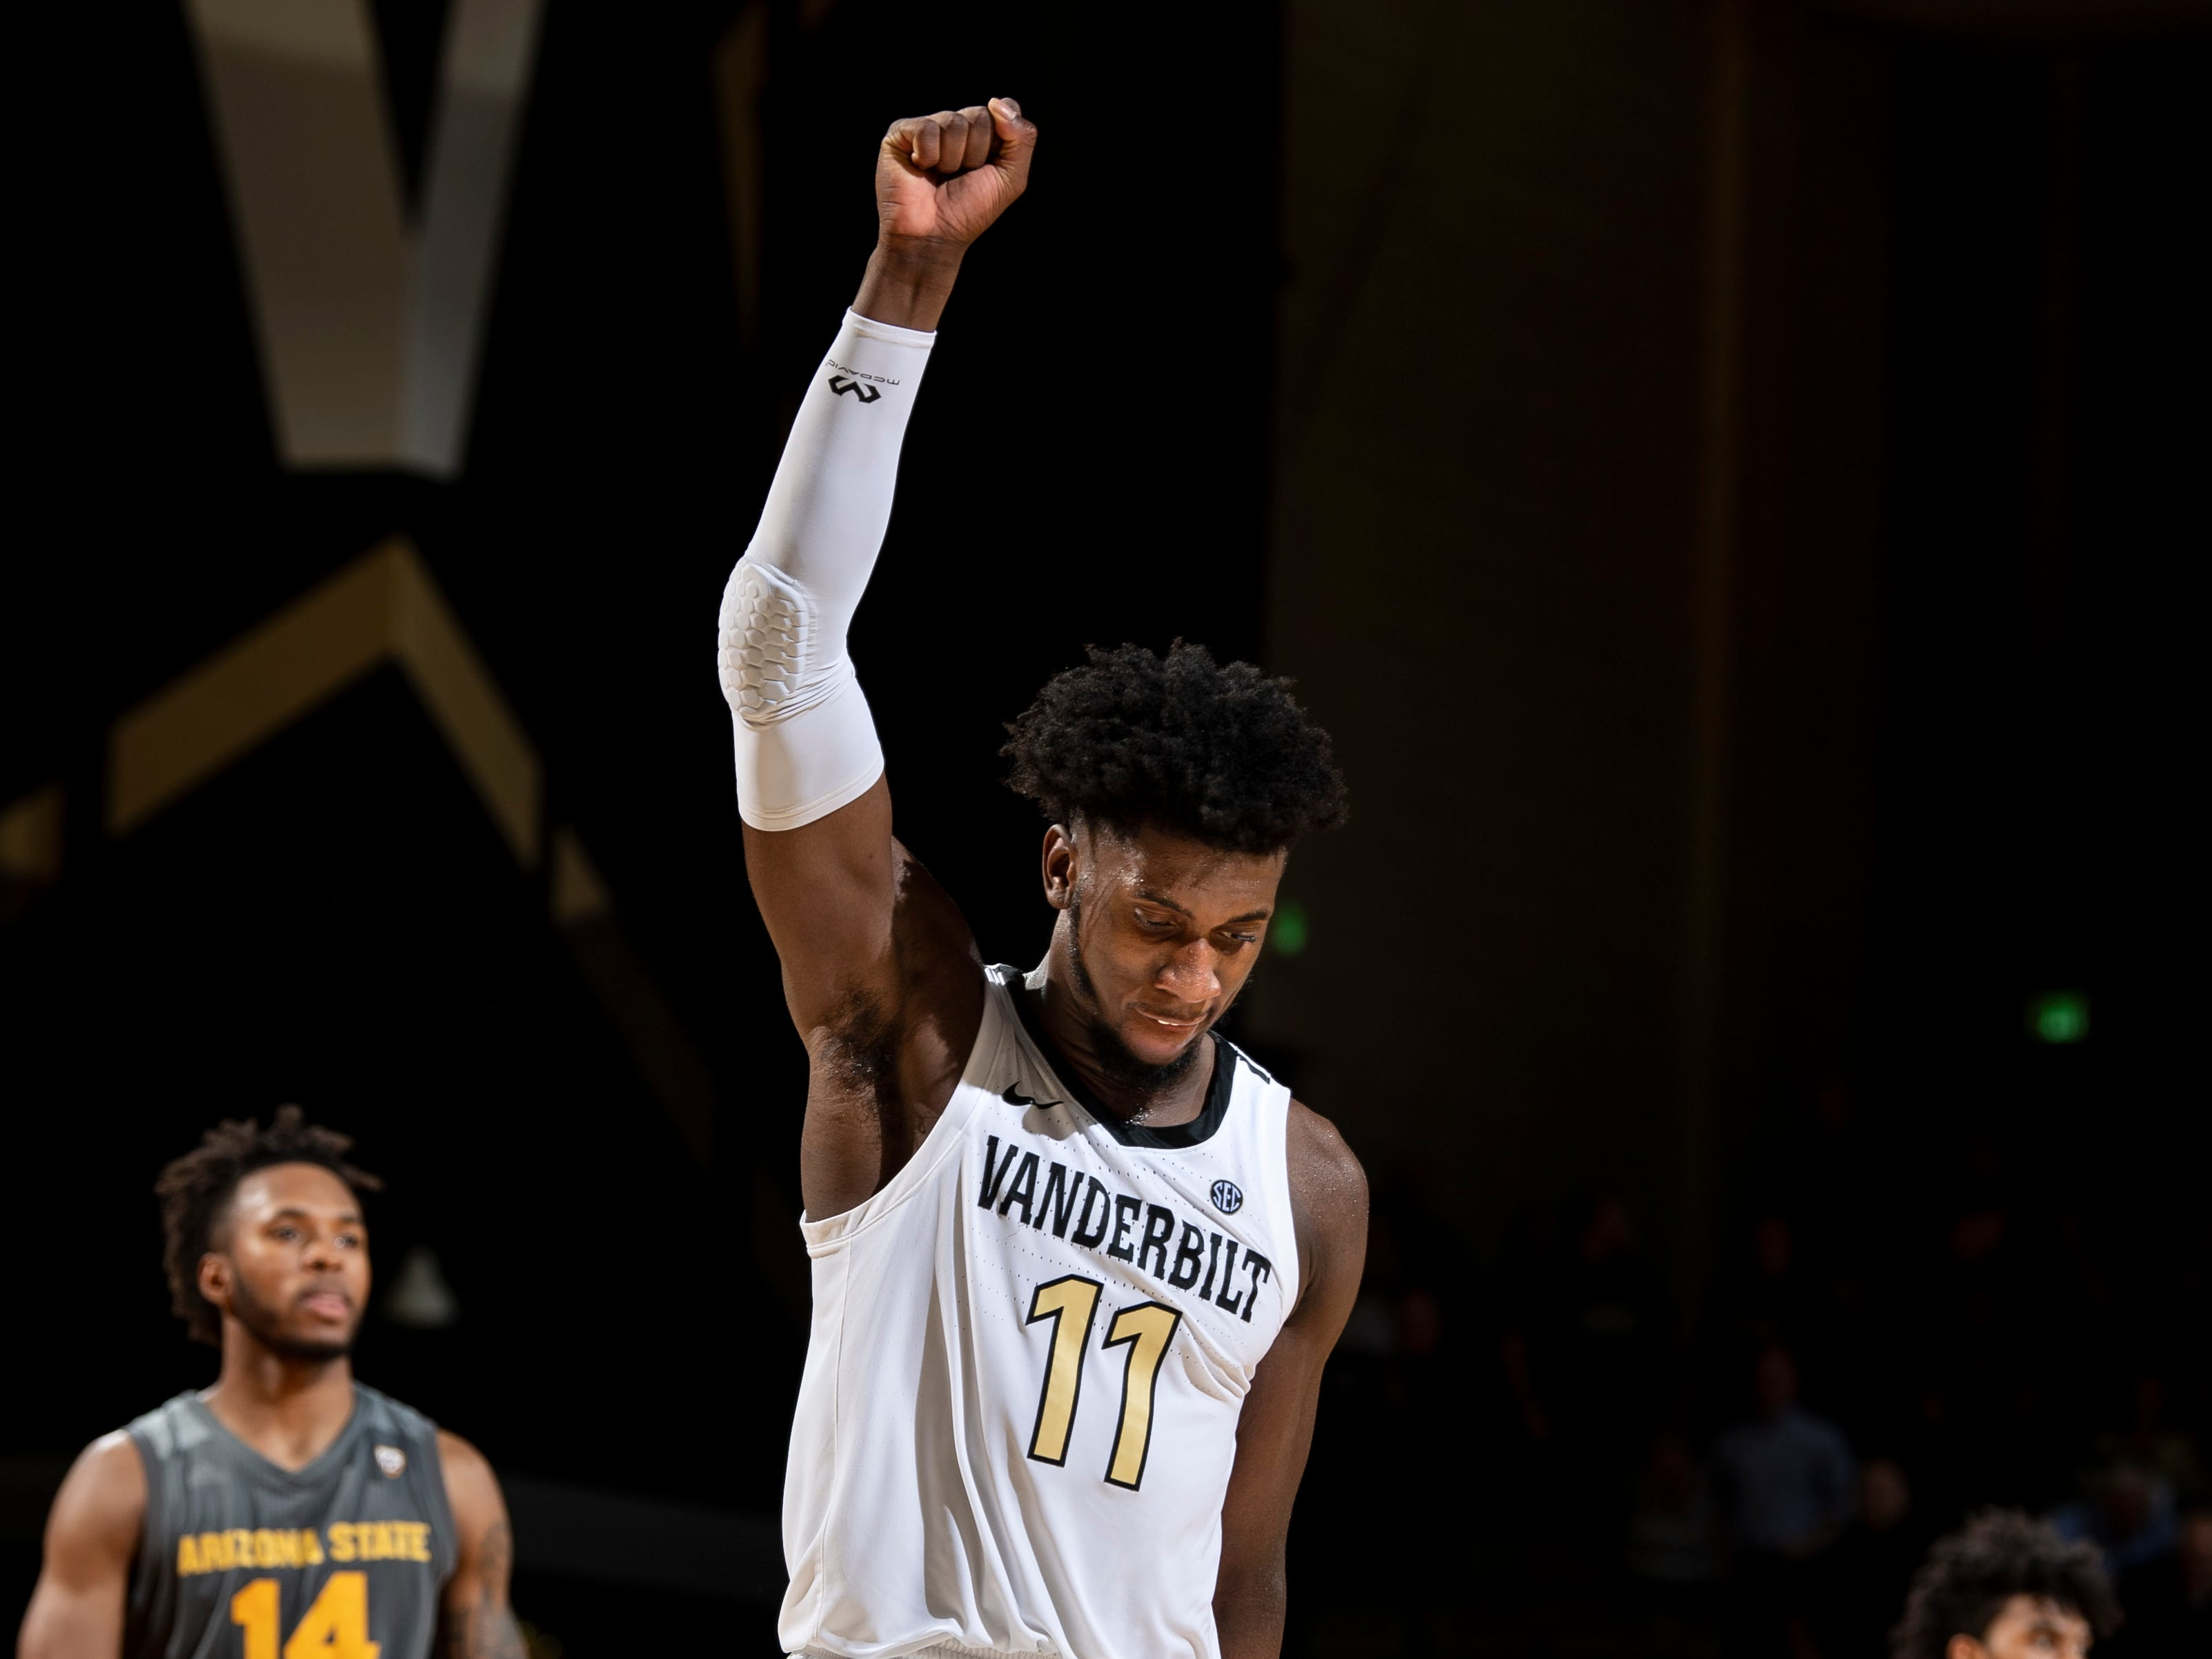 Vanderbilt forward Simisola Shittu (11) reacts to their victory against Arizona State at Memorial Gym in Nashville, Tenn., Monday, Dec. 17, 2018.